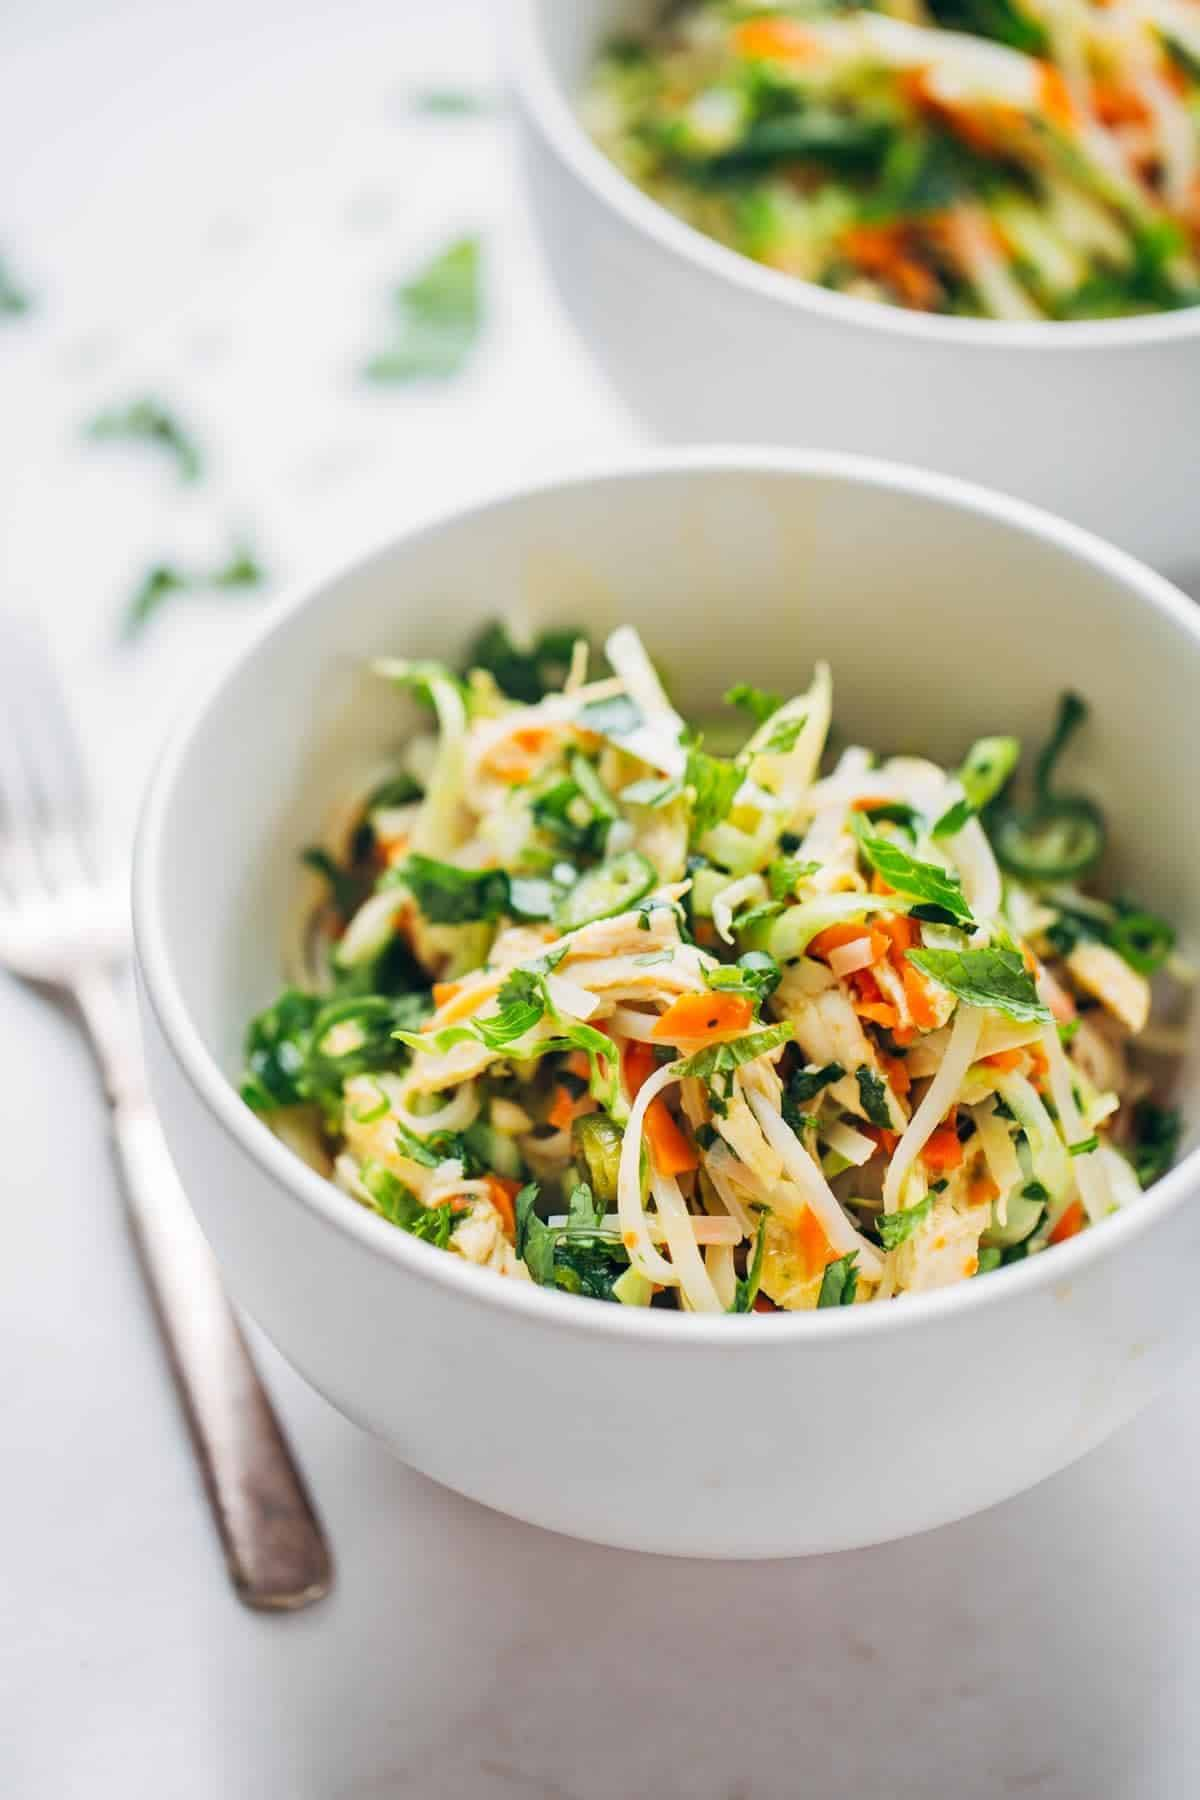 Vietnamese Chicken Salad with Rice Noodles in a white bowl.